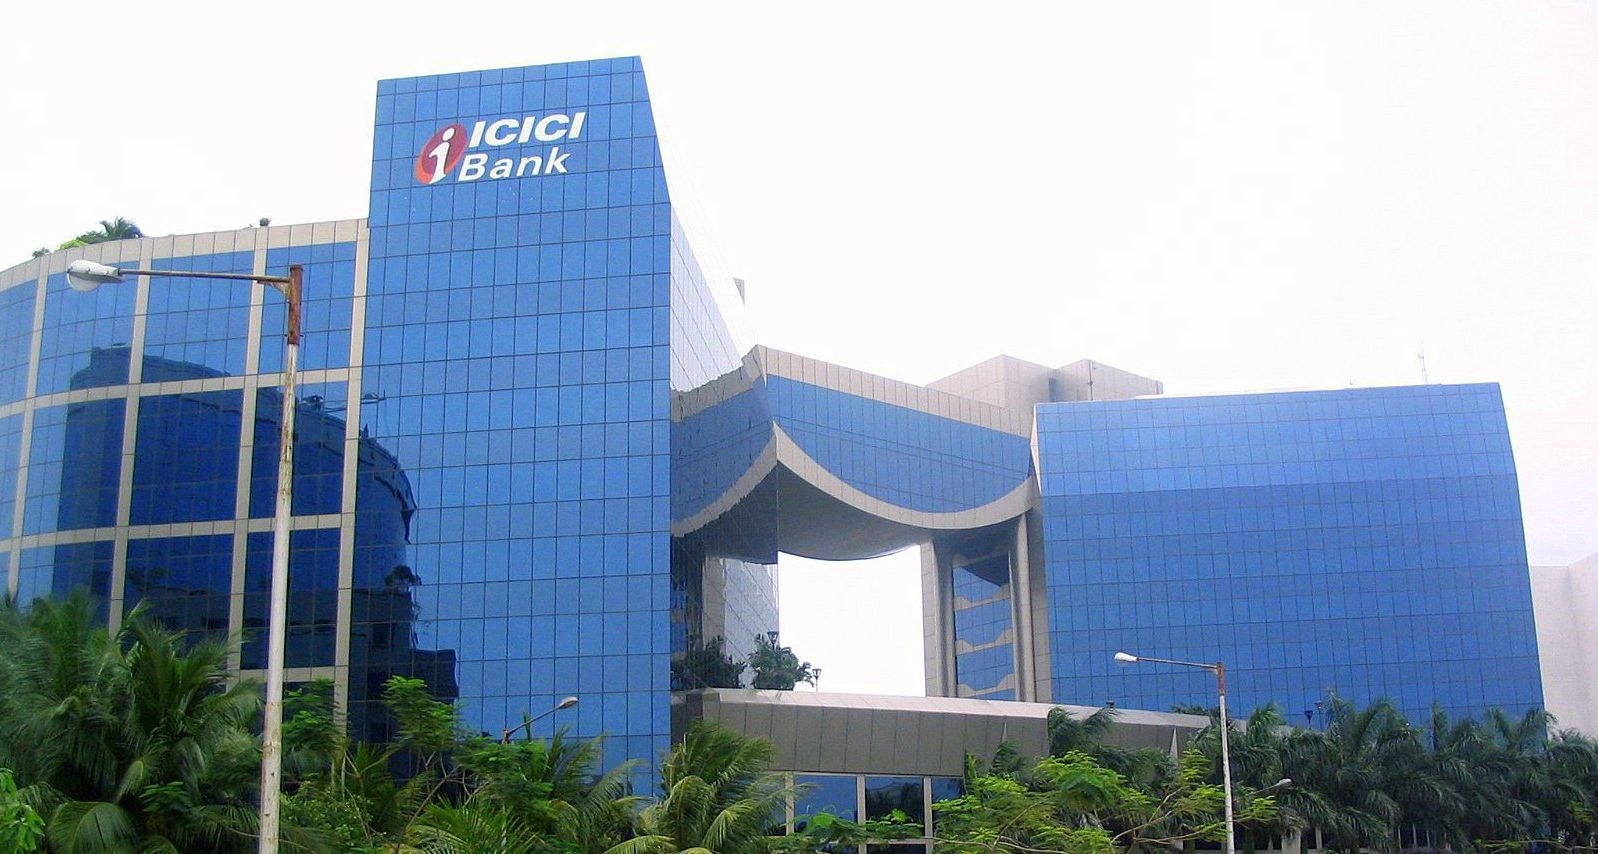 ICICI Bank's net non-performing assets came in at the lowest level in past 13 quarters